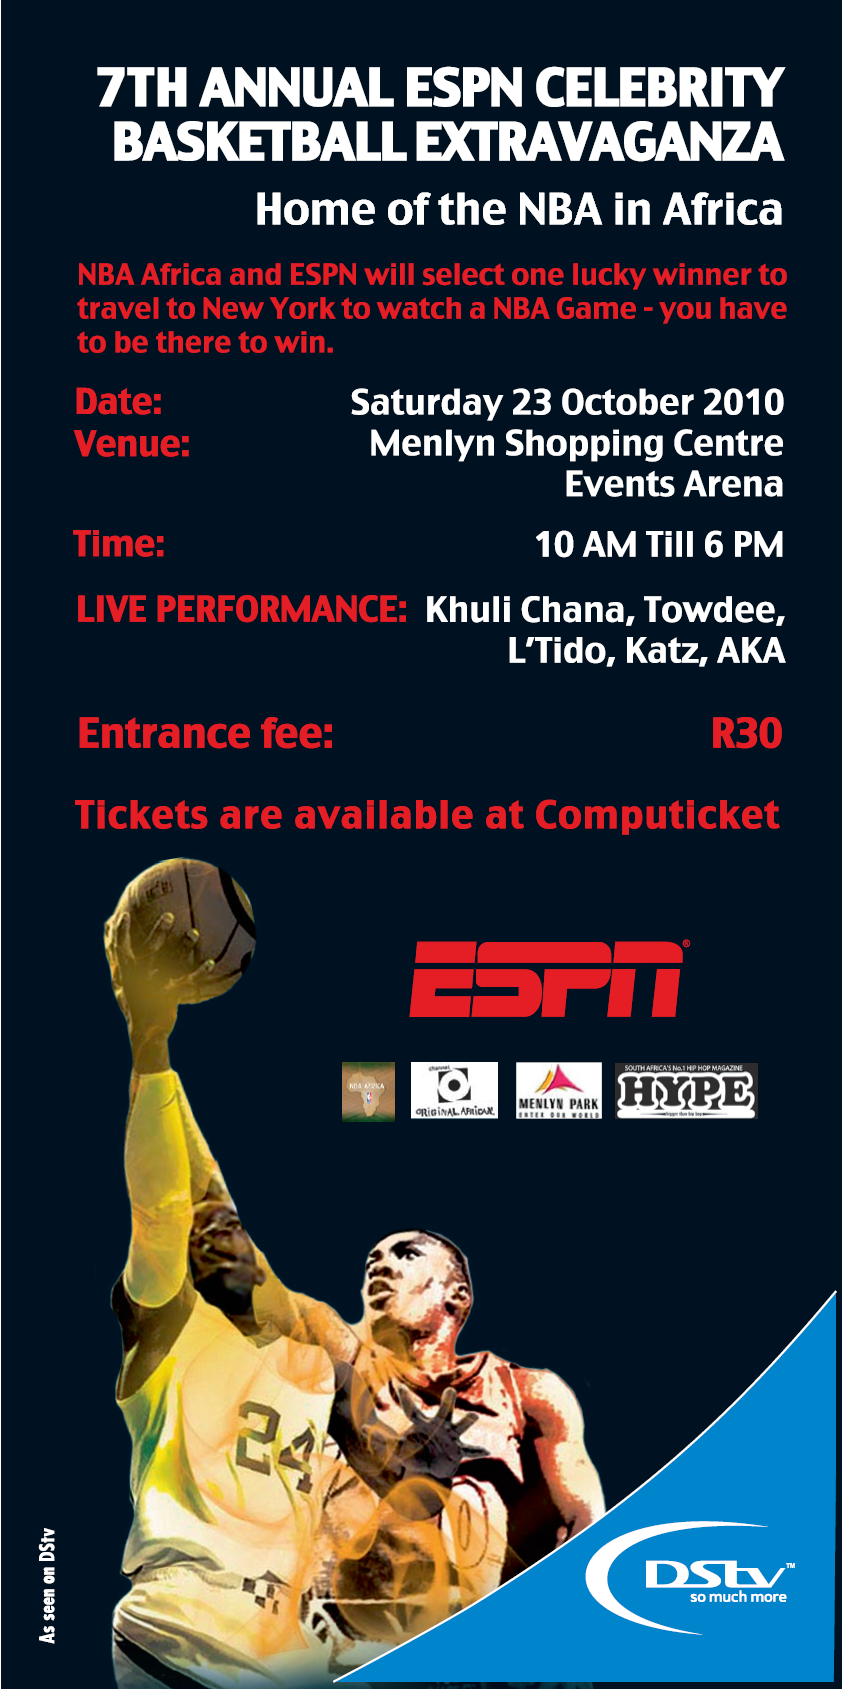 With the espn celebrity event happening this weekend in tshwane at the